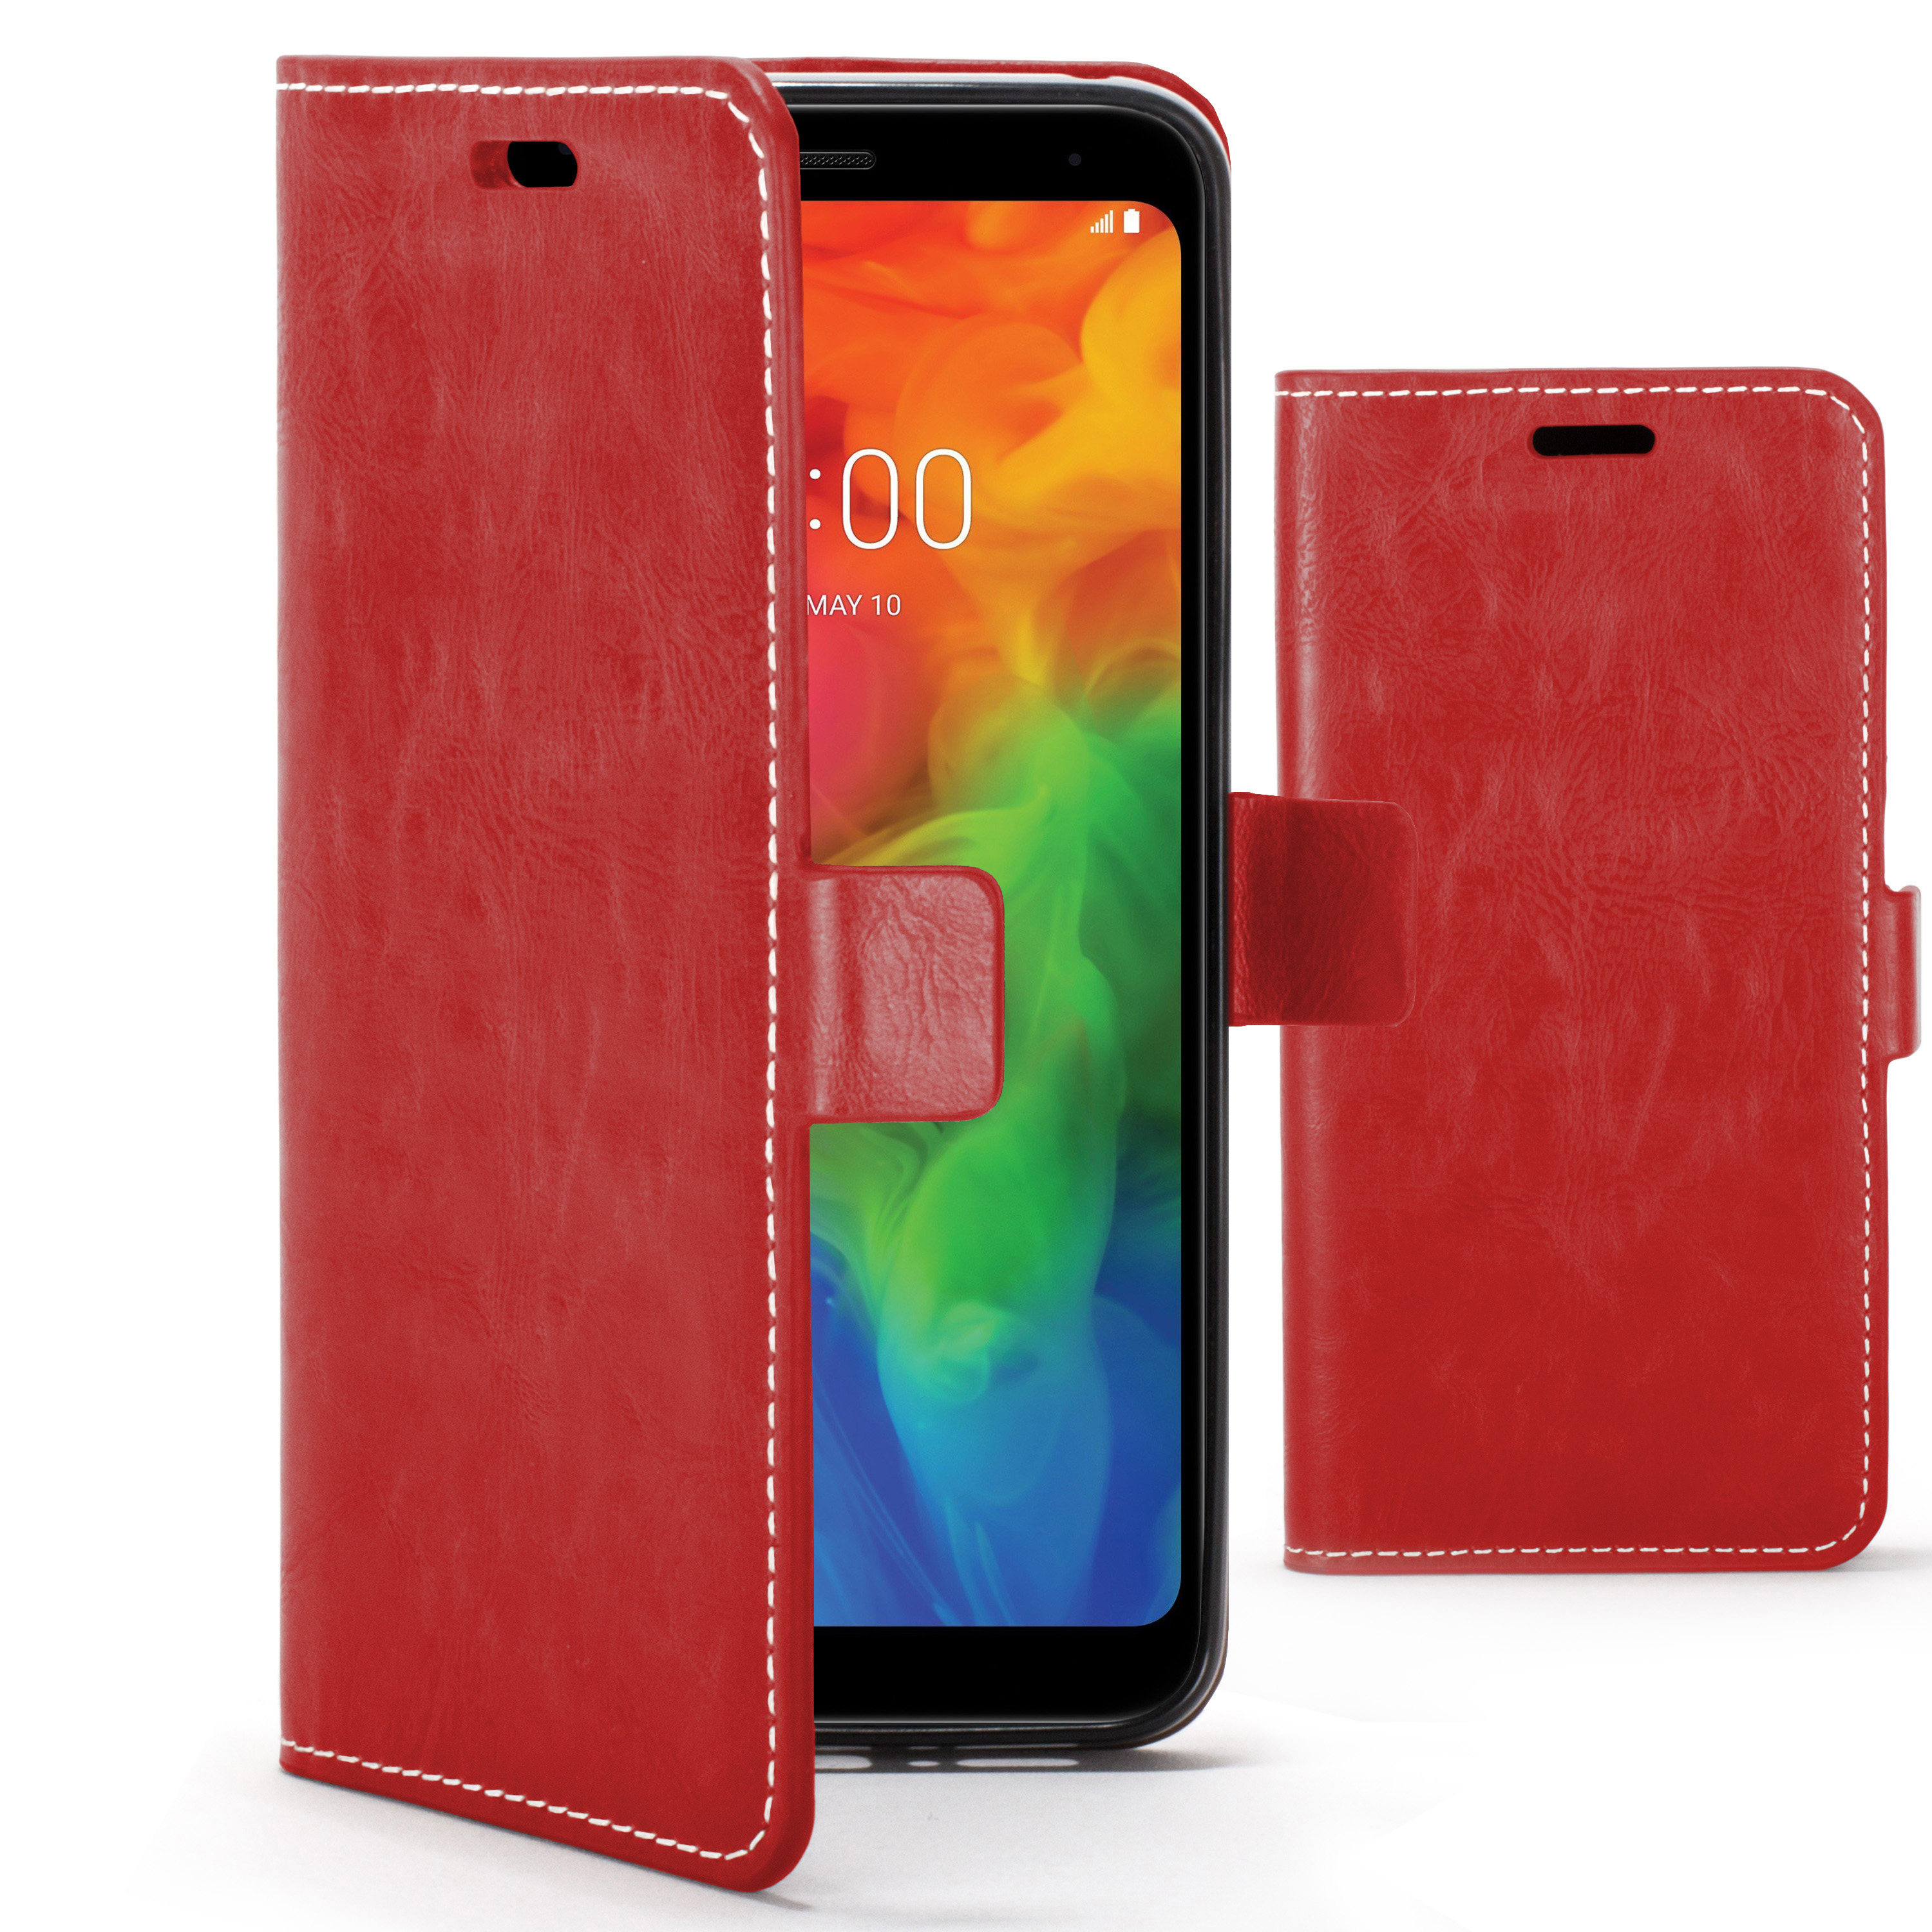 pretty nice 51922 de93a Forefront Cases LG Q7 Premium Handmade PU Leather Case Cover   Red